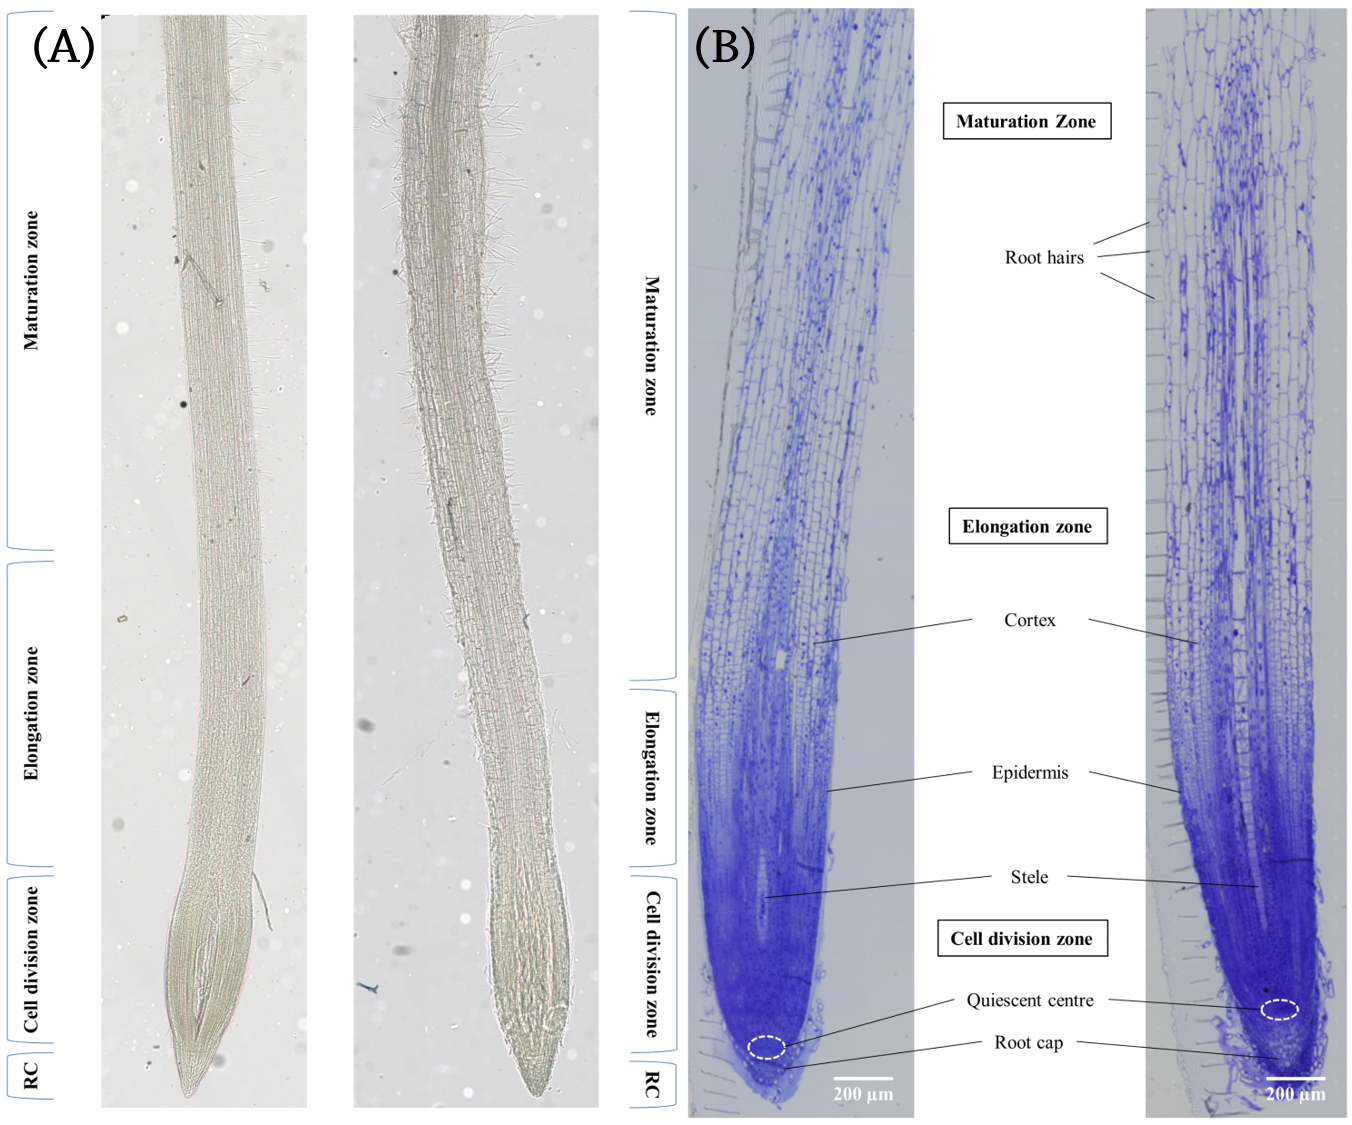 Figure 1.  (A) Unstained and (B) Toluidine Blue O stained longitudinal sections of barley seminal root showing the different zones of the barley root. The left root in each image was grown in standard nutrient medium and the right root in each image was grown in nutrient medium containing 150 mM NaCl.